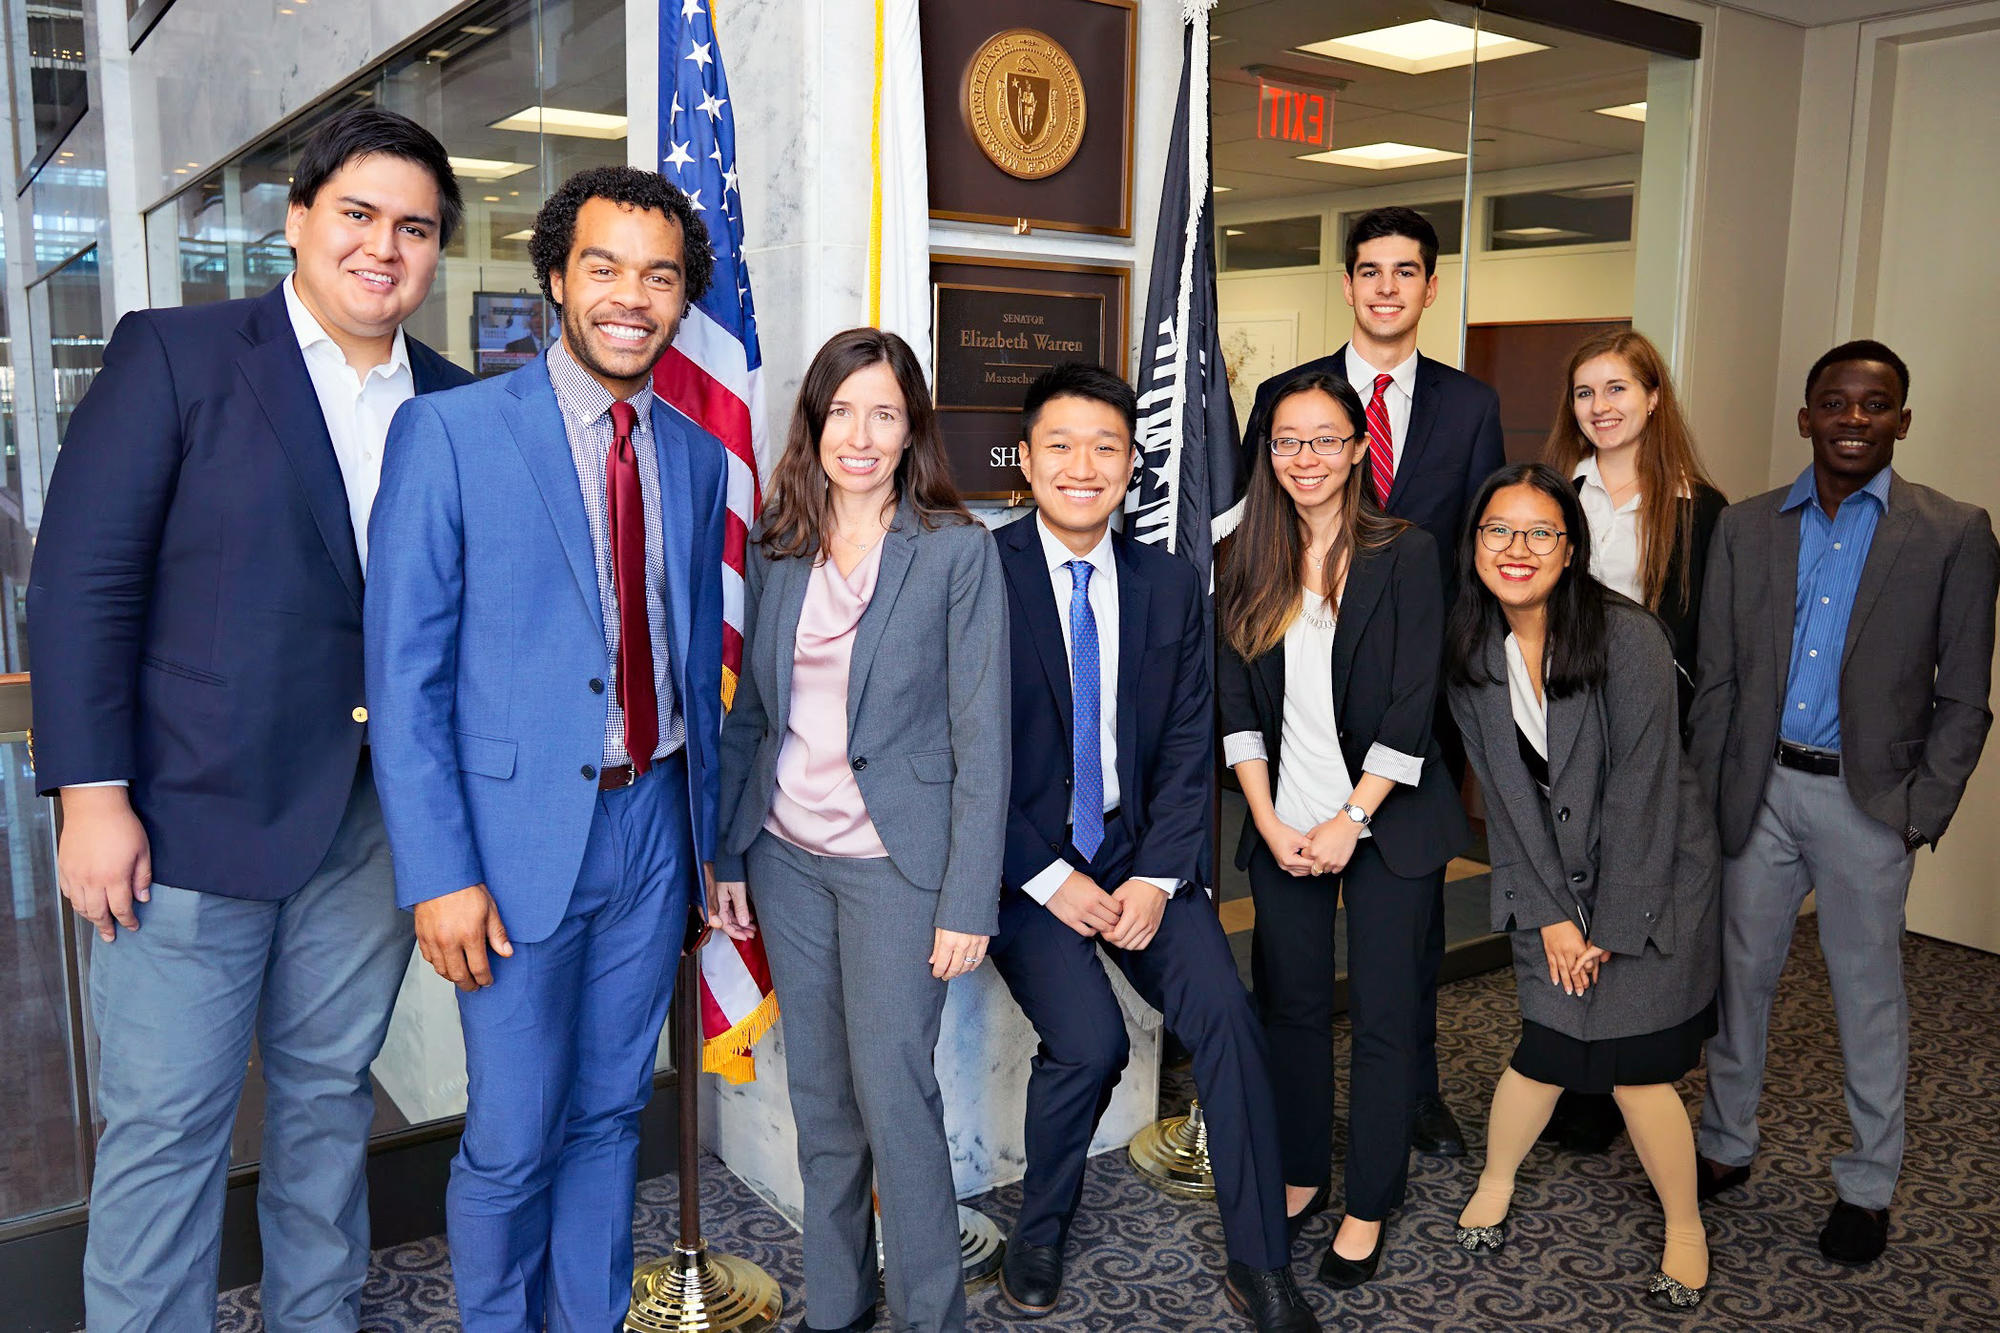 Nine members of the advocacy trip pose in front of the plaque outside Senator Warren's office. They wear dark suits for their meetings on Capitol Hill.